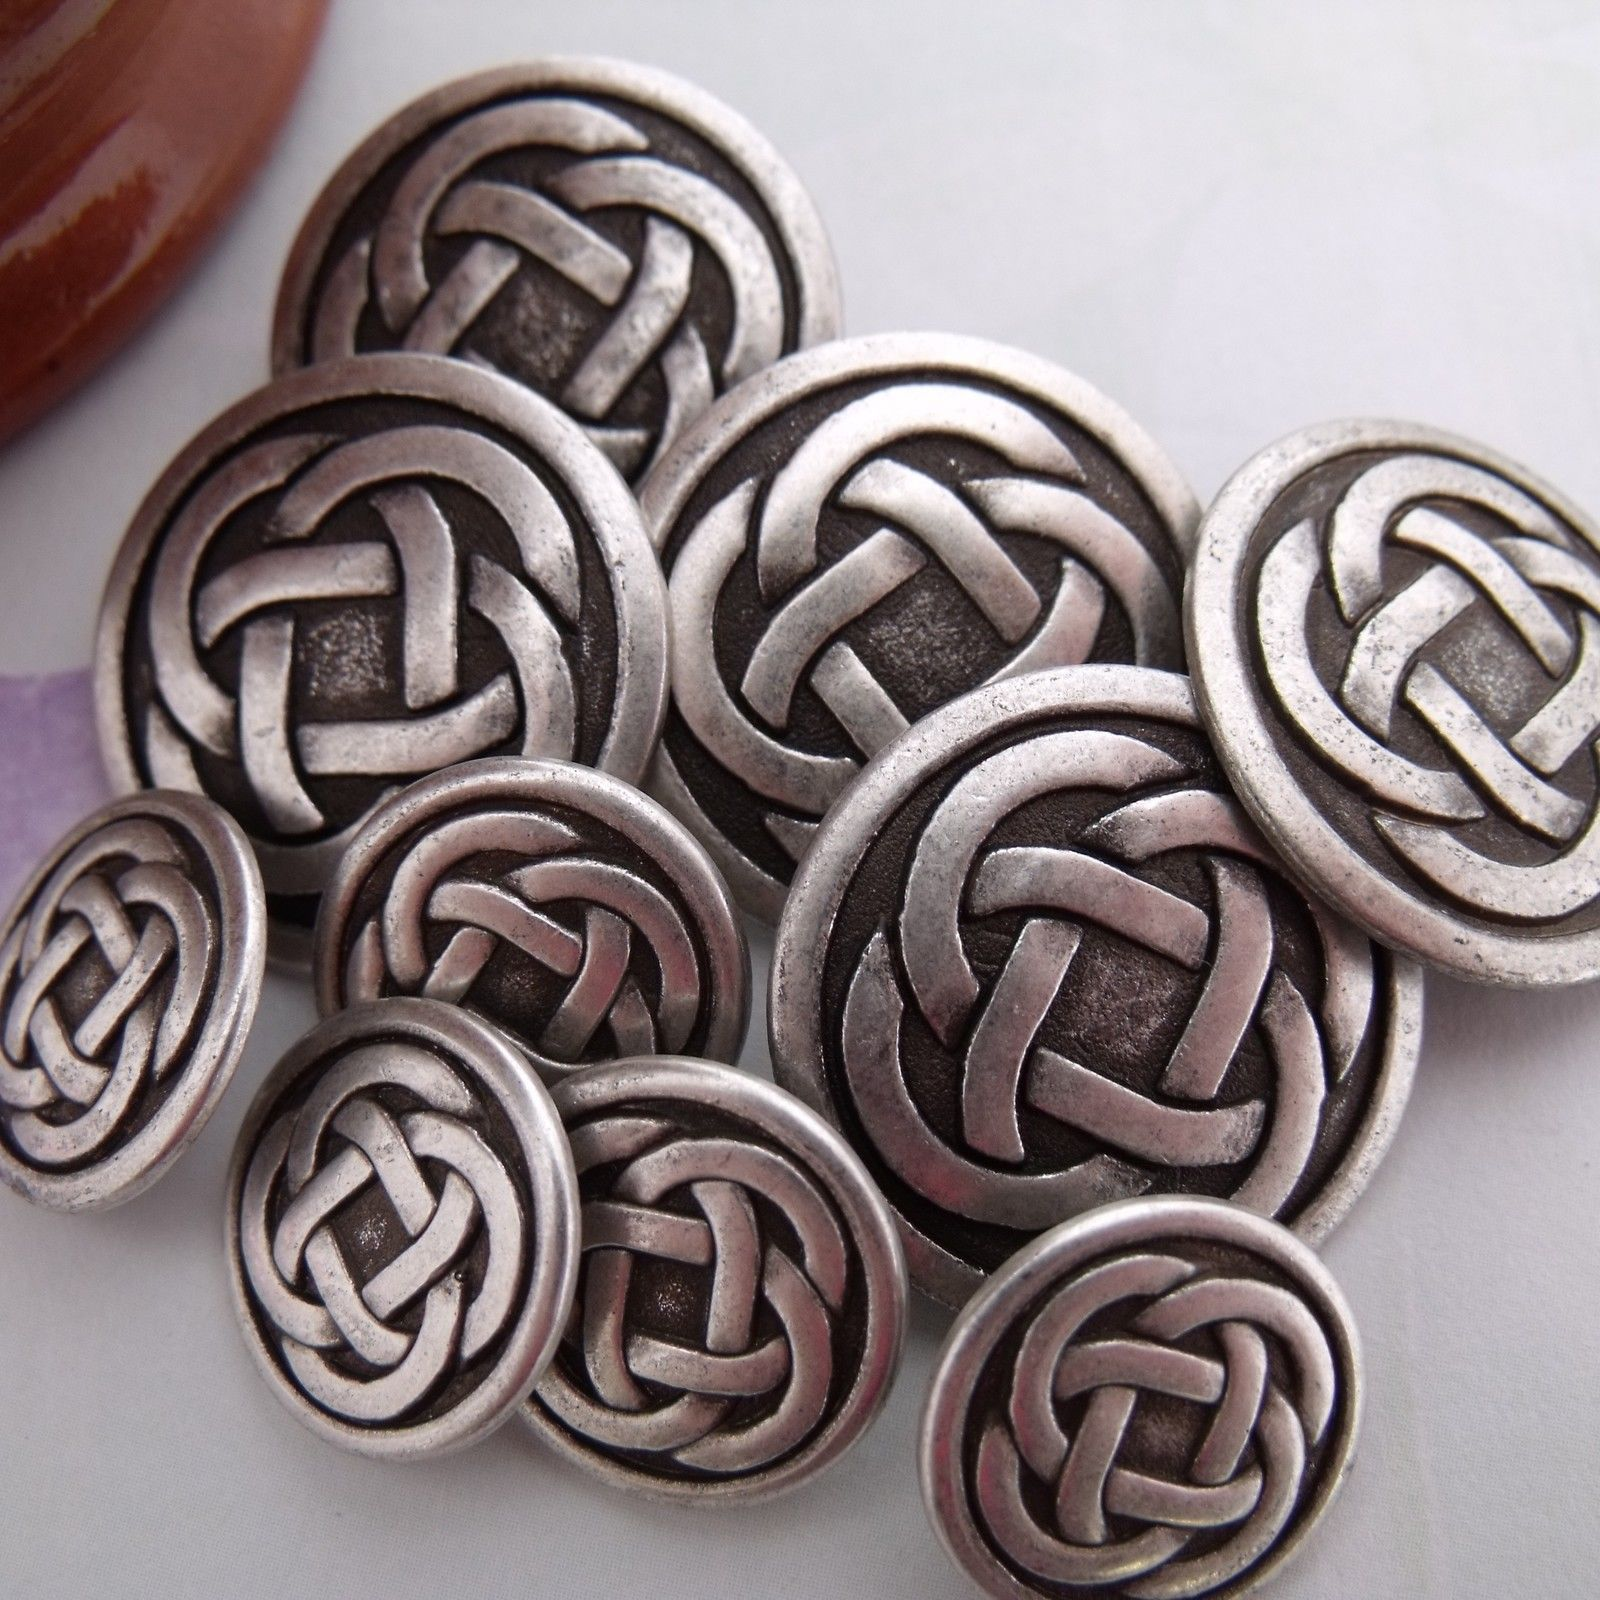 x celtic knot metal buttons sizes mm mm mm in